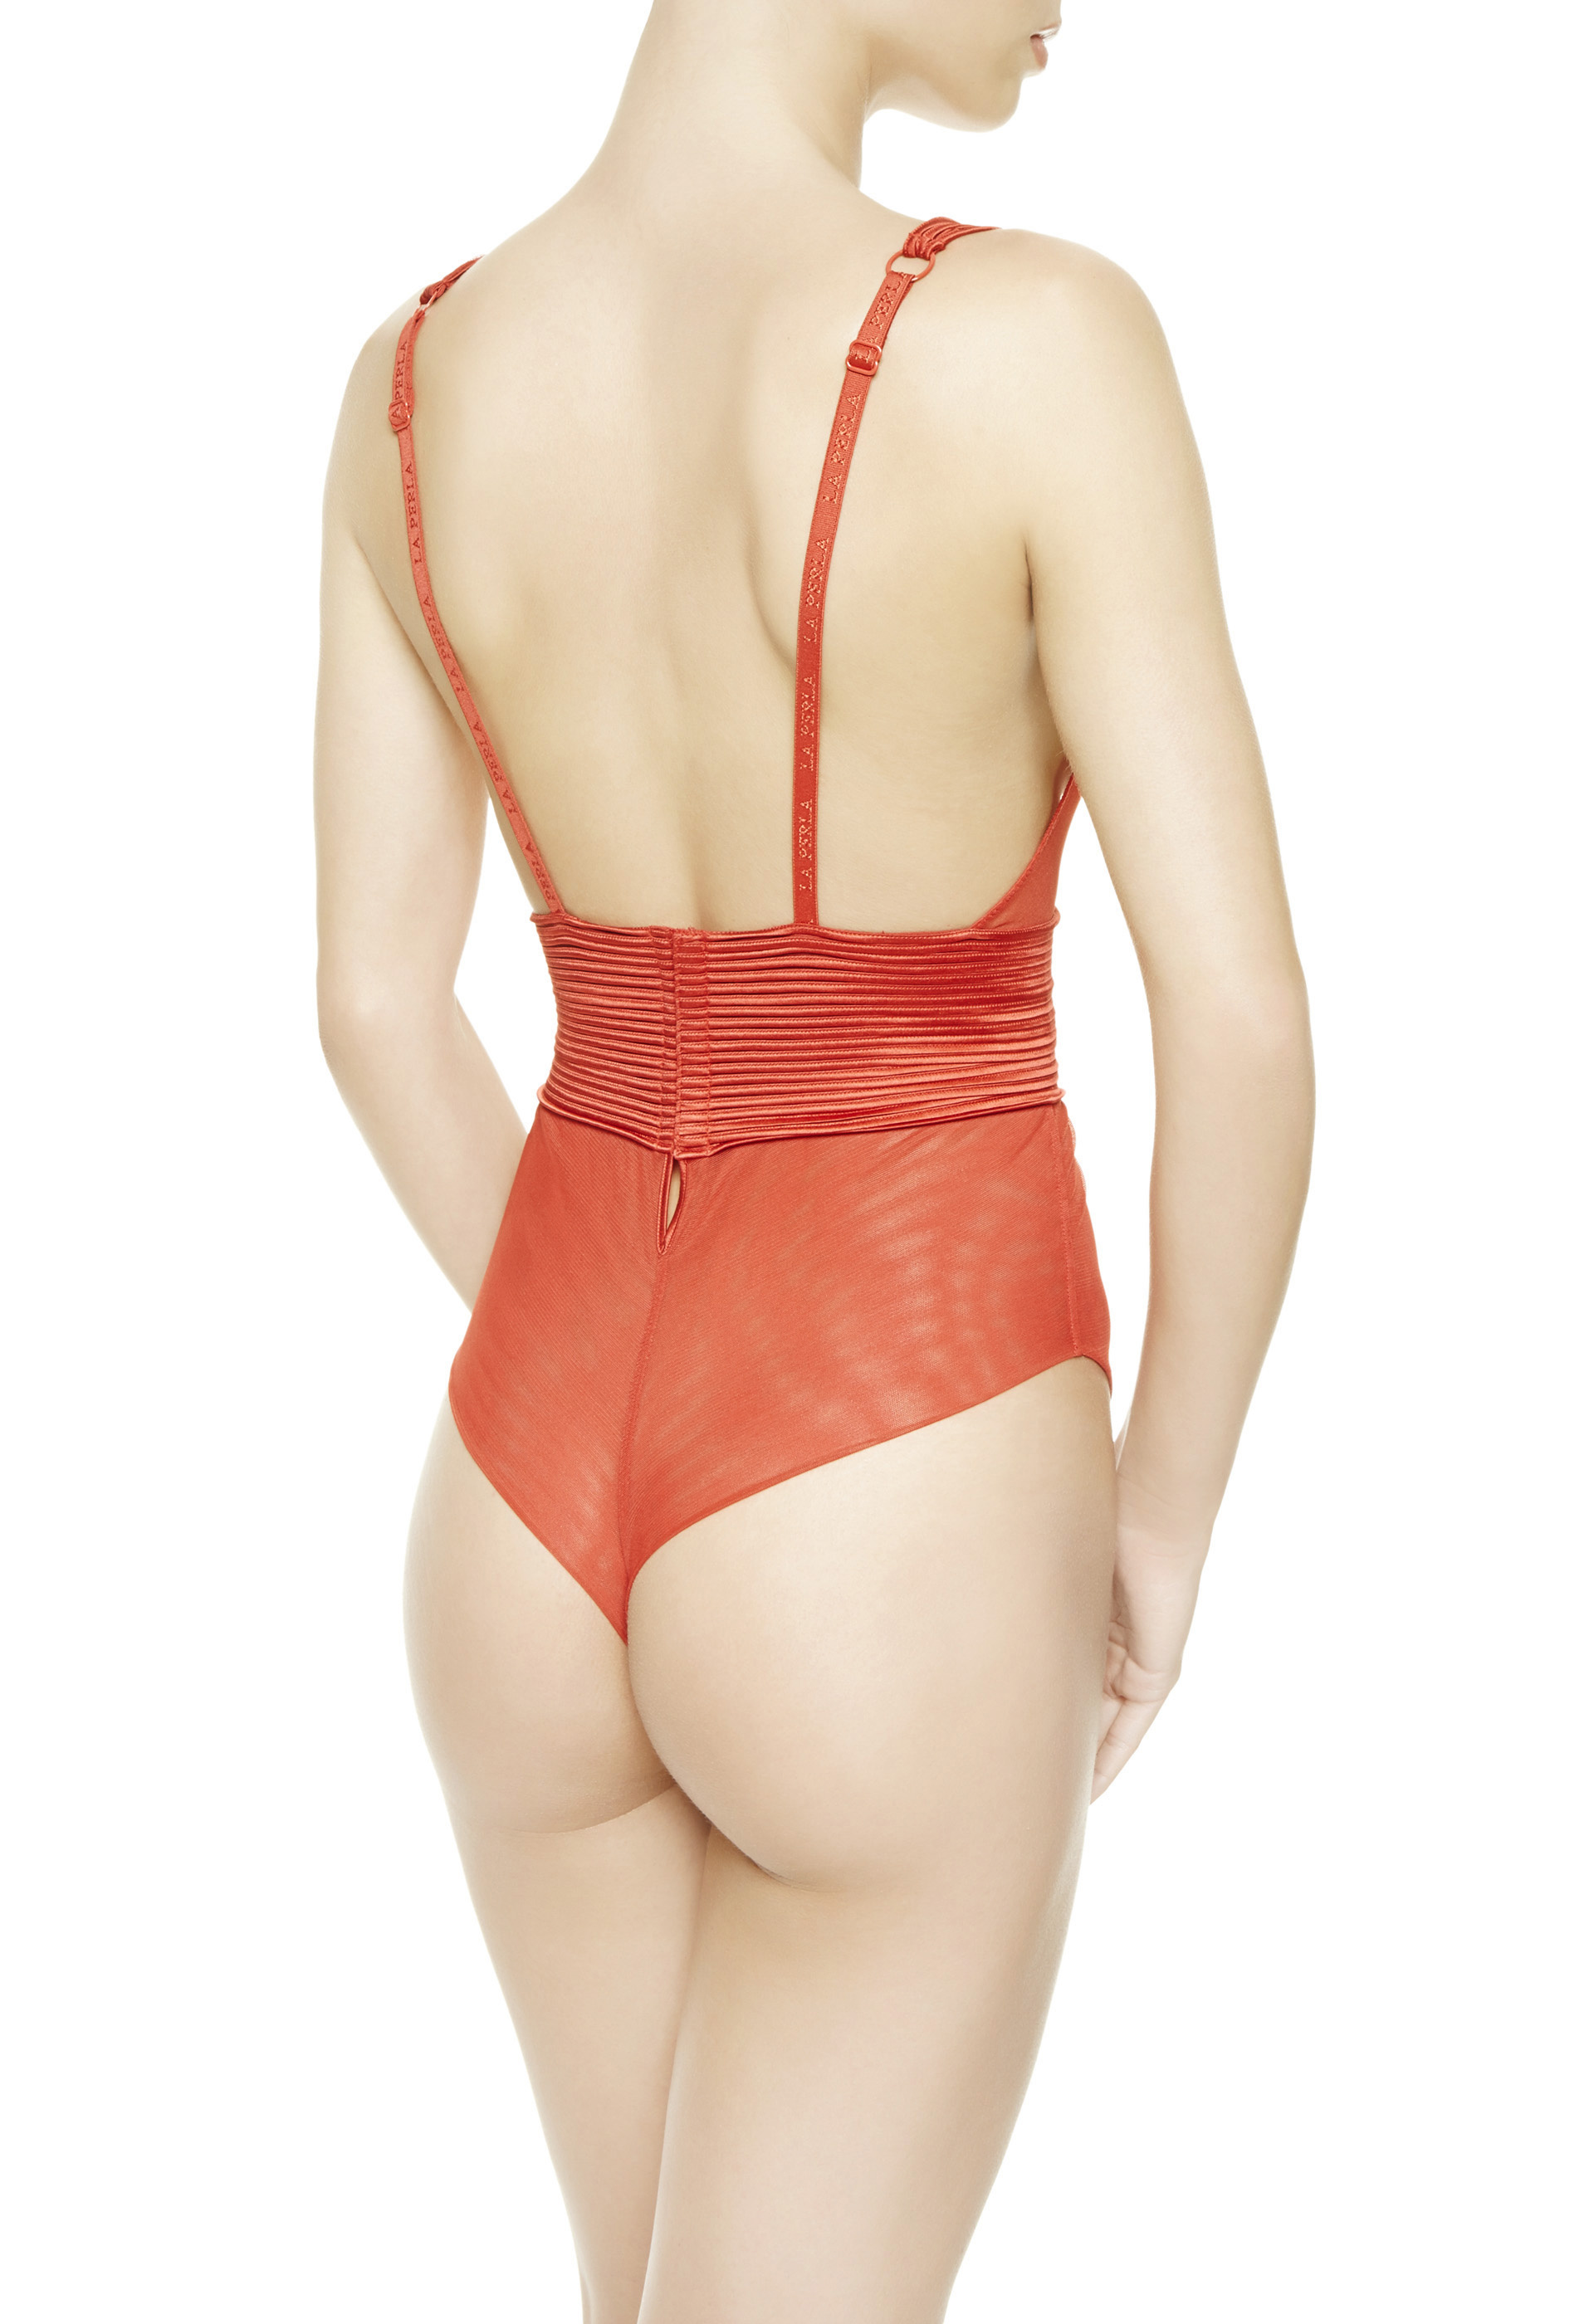 laperla bodysuits 14-23